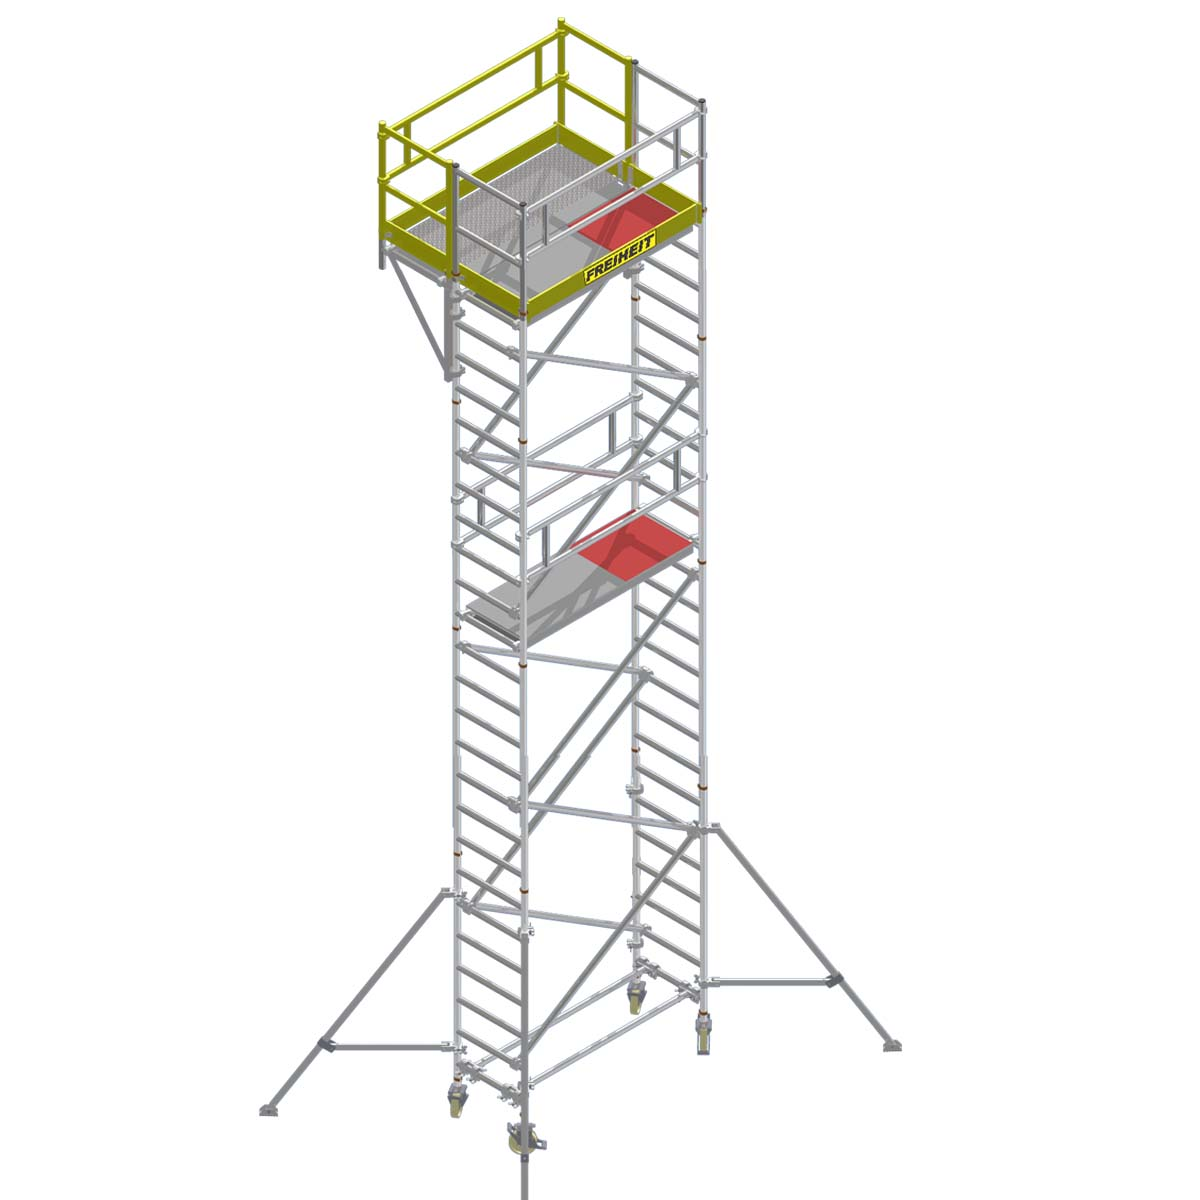 aluminium mobile scaffold towers   mobile scaffold tower with cantilever platform